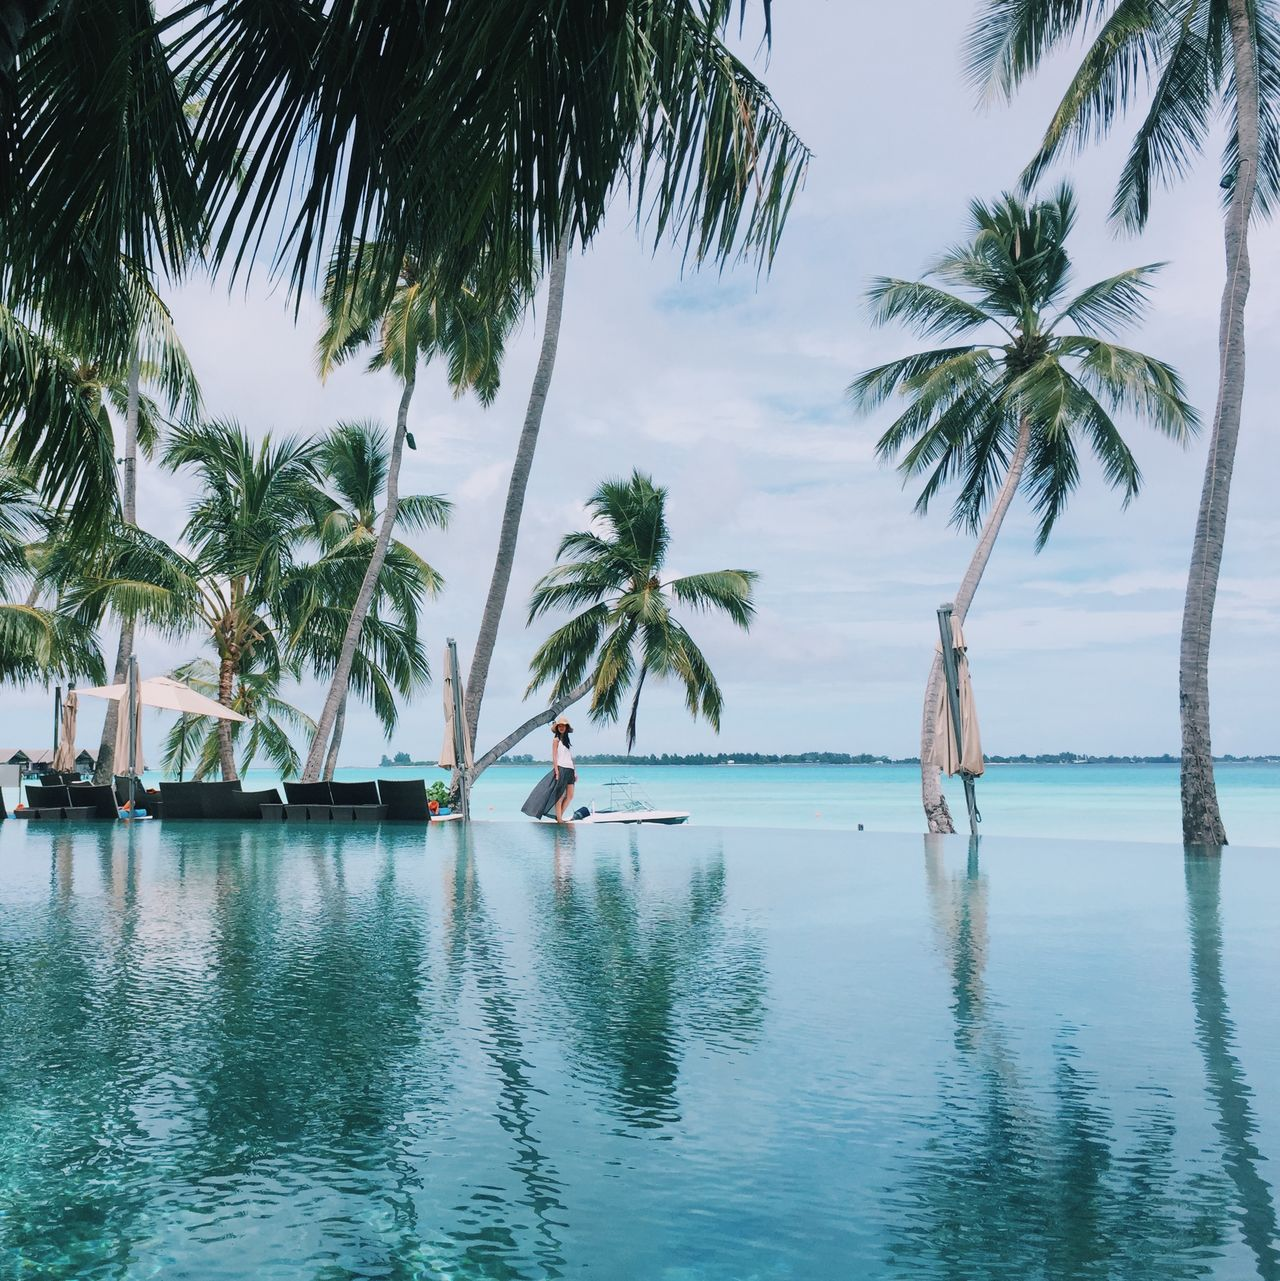 Shangri-La Shangrilamaldives Palms EyeEm Best Shots Vscocam Instagram Follow4follow Relaxing Holiday Travel Photography